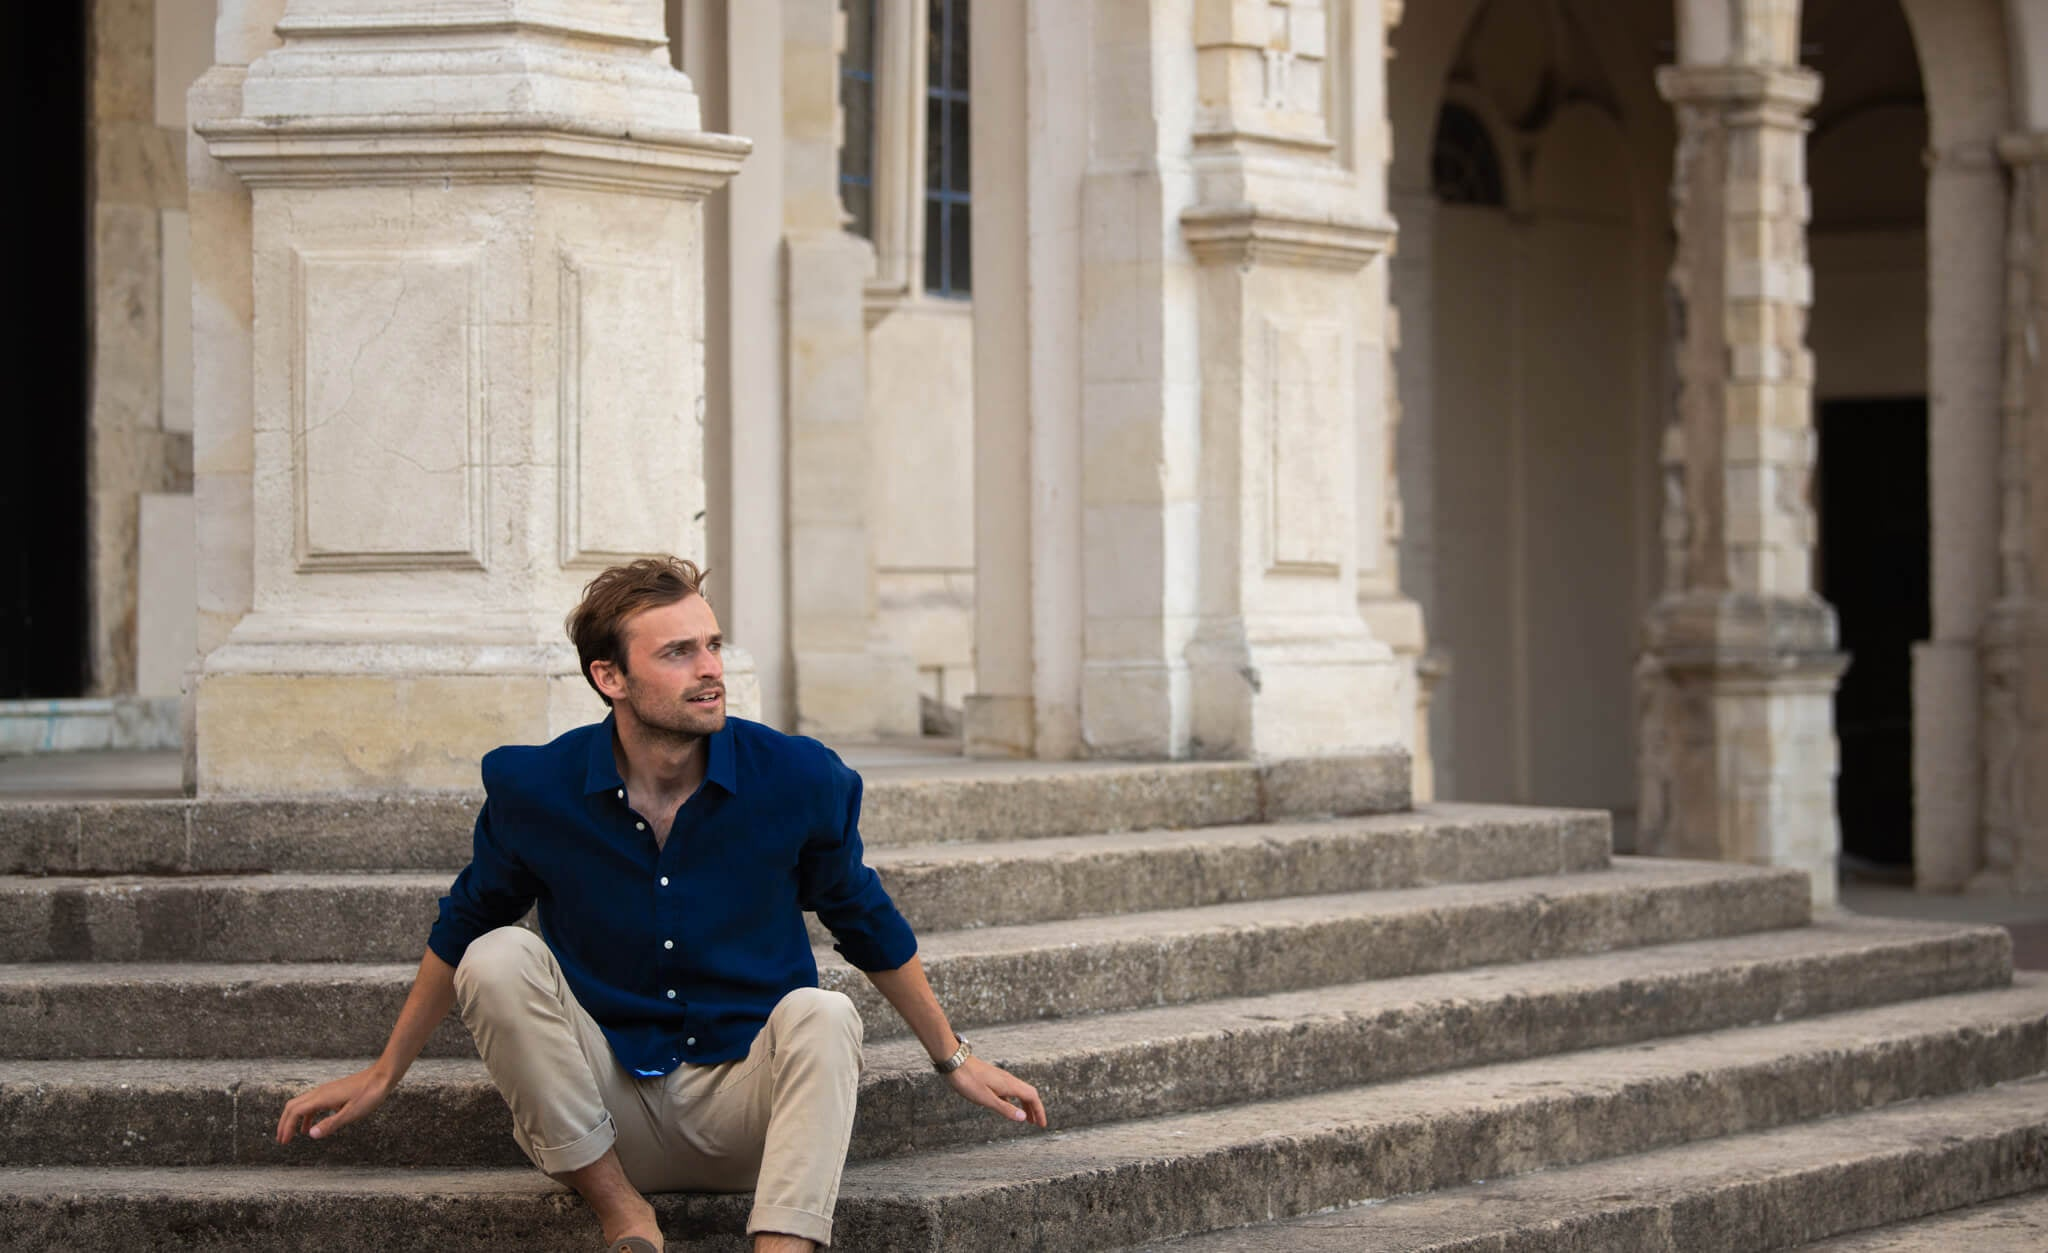 Harry, our model, sitting on steps whilst modelling a navy blue hemp shirt. hemp clothing by babble & hemp. location is London. the fabric of the shirt is 100% hemp.